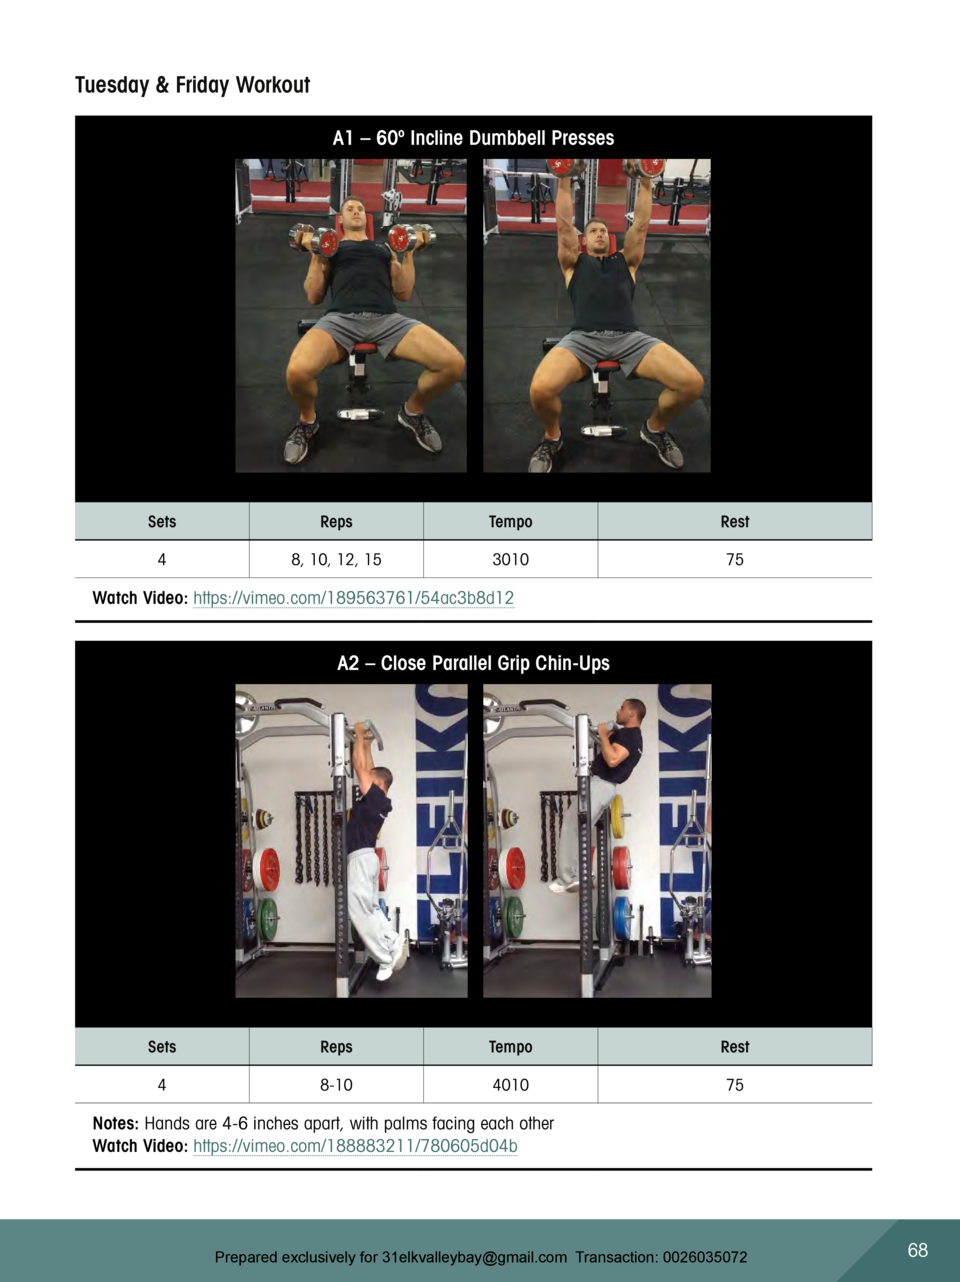 Tuesday   Friday Workout A1     60   Incline Dumbbell Presses  Sets  Reps  Tempo  Rest  4  8, 10, 12, 15  3010  75  Watch ...